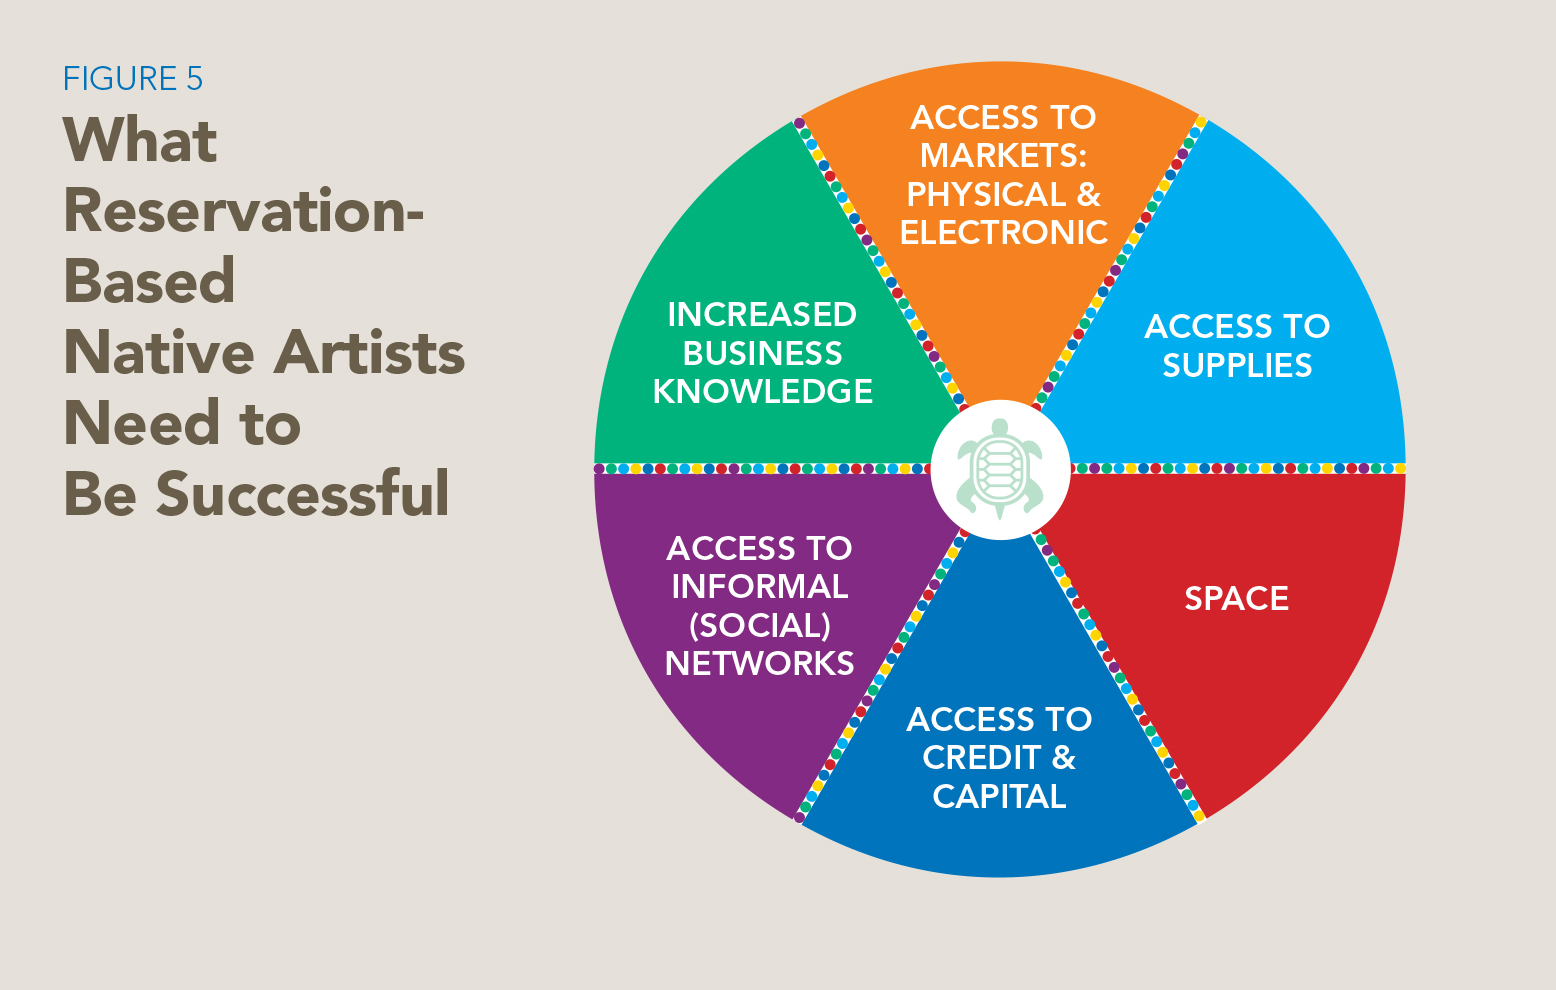 Graphic from First Peoples Fund's market study  Establishing a Creative Economy: Art as an Economic Engine in Native Communities